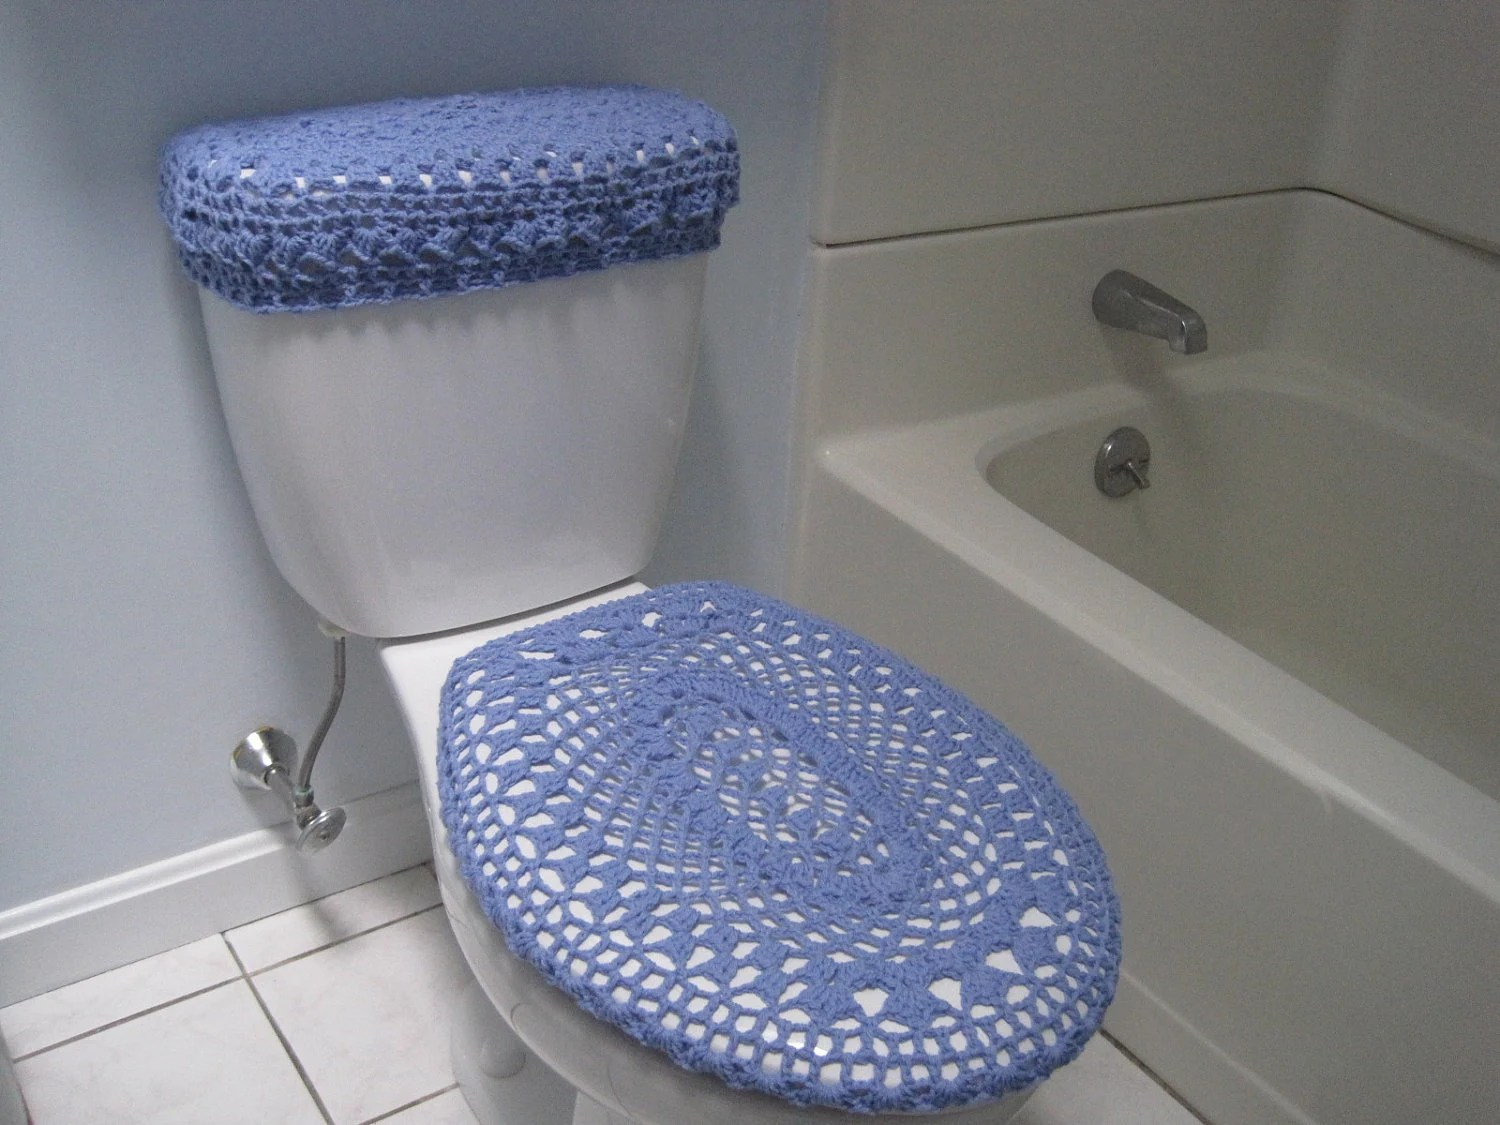 Bleach In Toilet Tank Set Of 2 Crochet Covers For Toilet Seat & Toilet Tank Lid